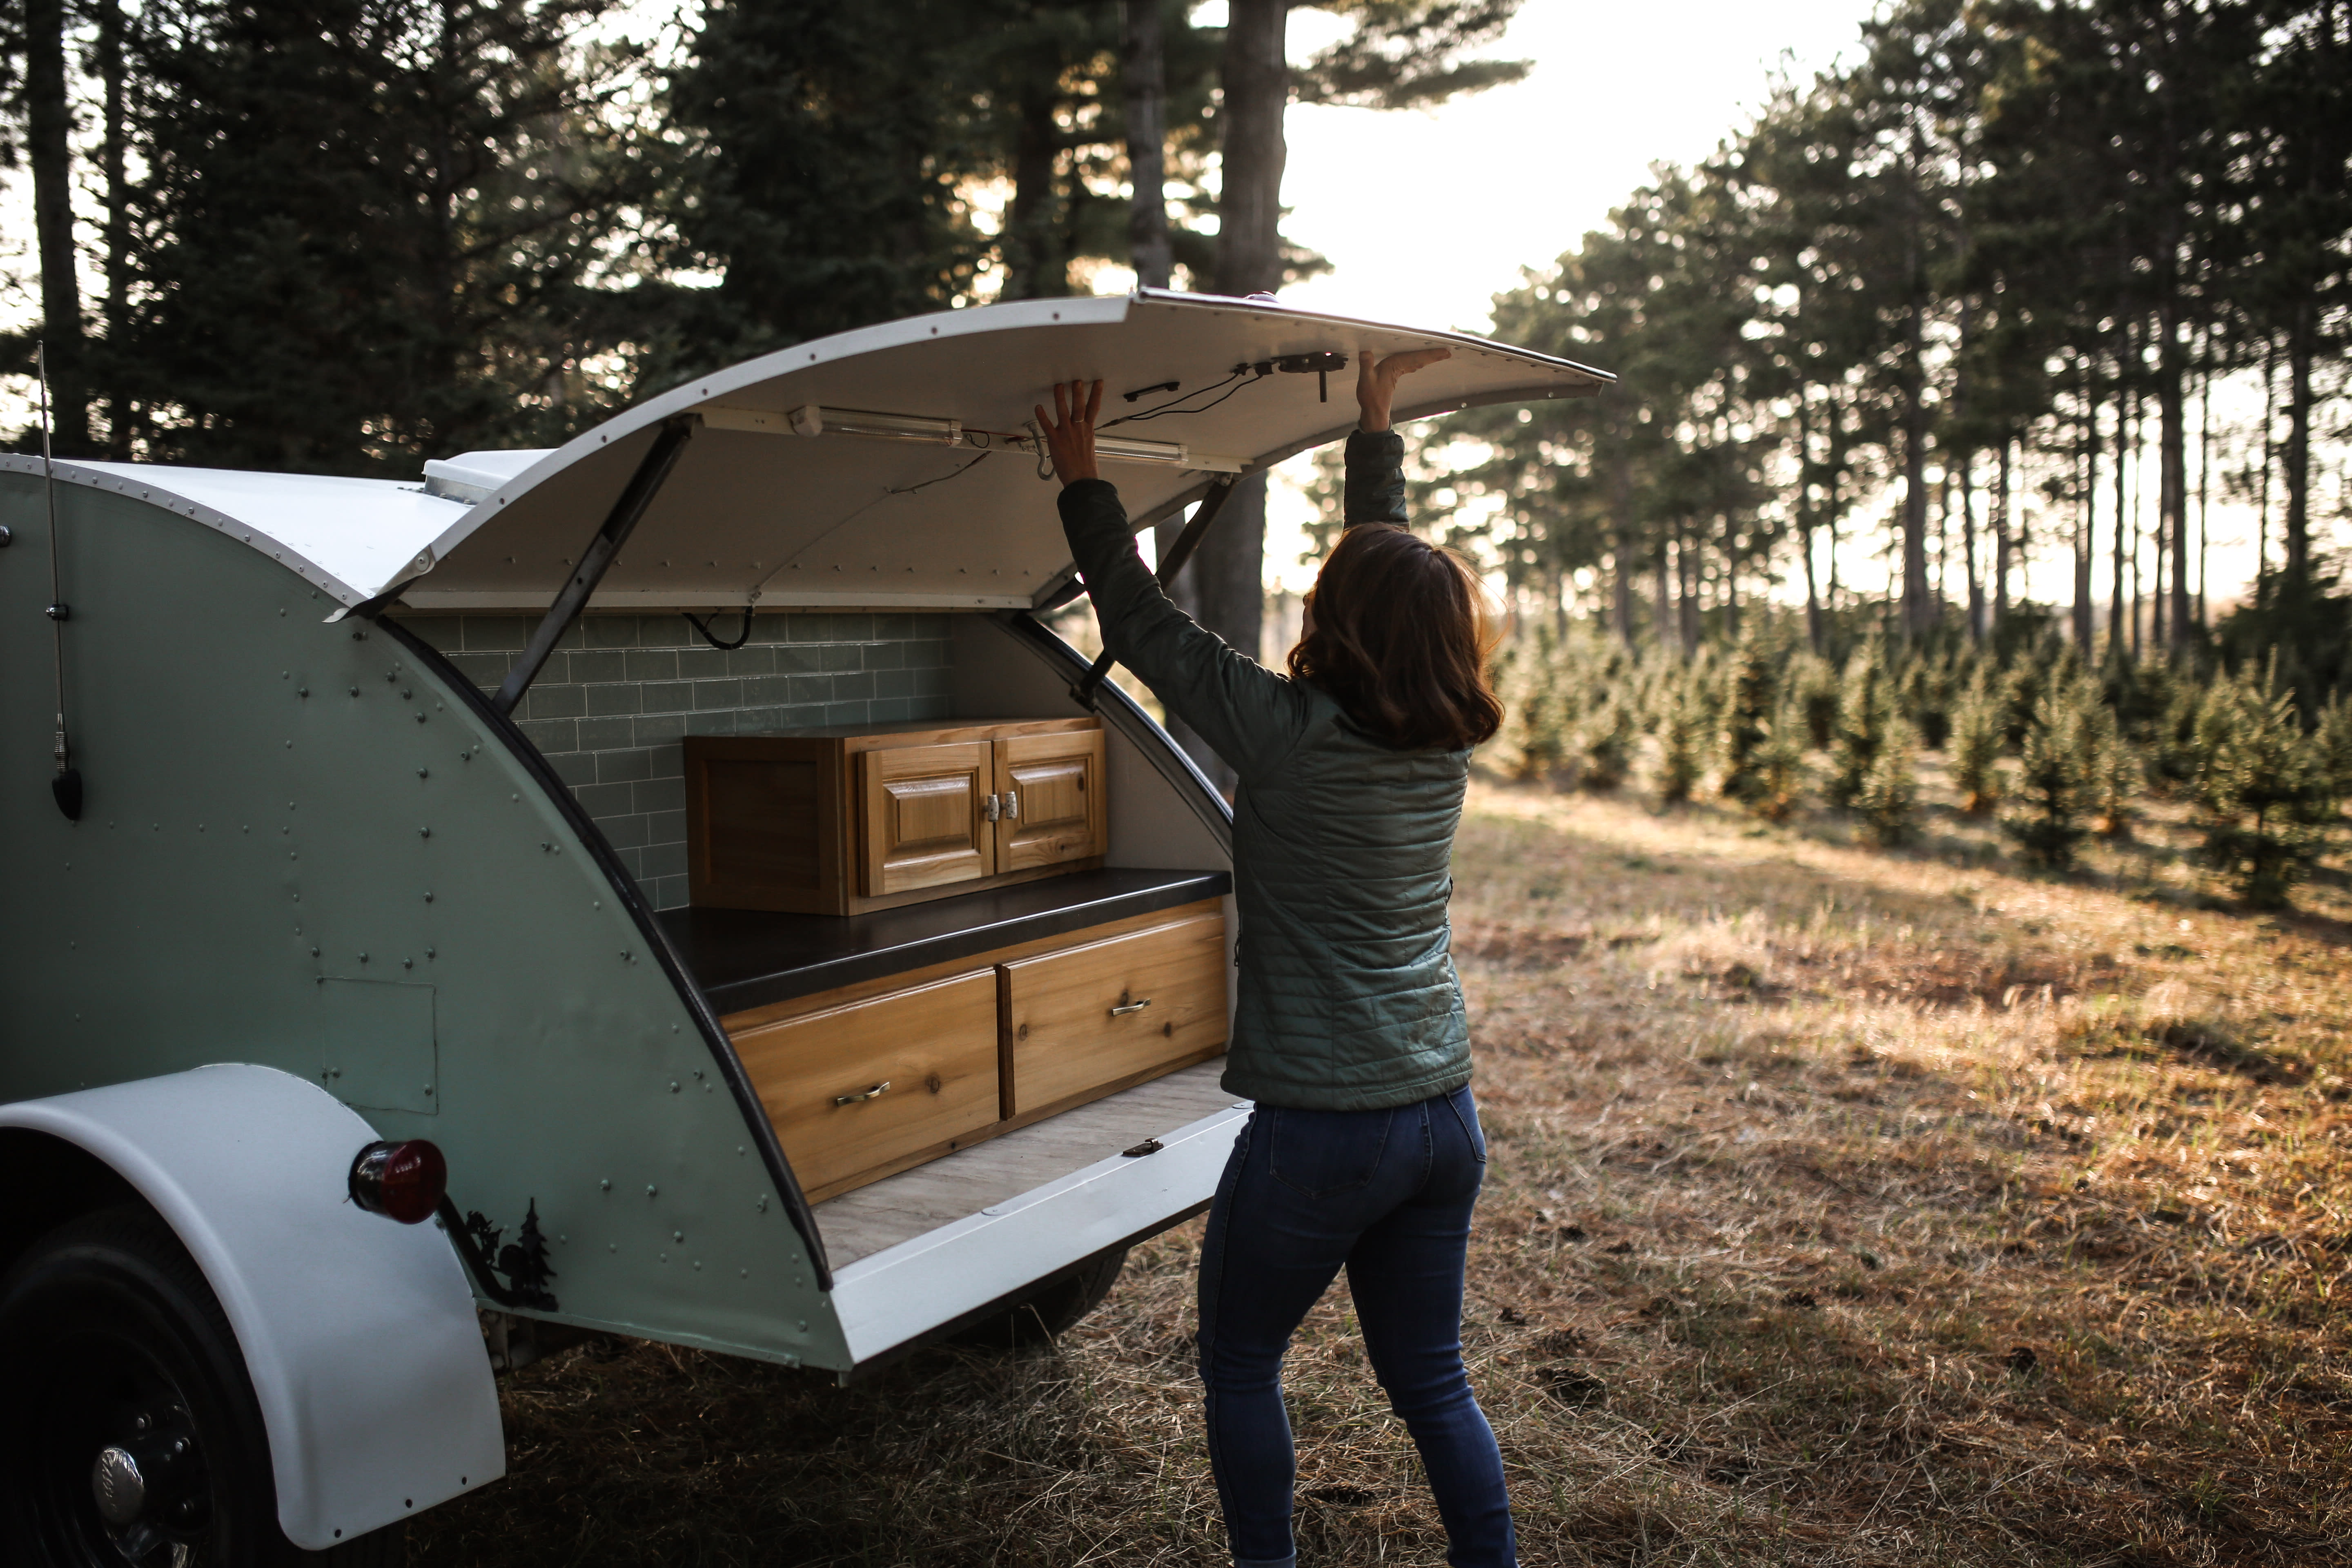 Kitchen comes equipped with butane stove, pots and pans, utensils, cutting board, plates, bowls, coffee making supplies and more. Custom Teardrop Camper 1945